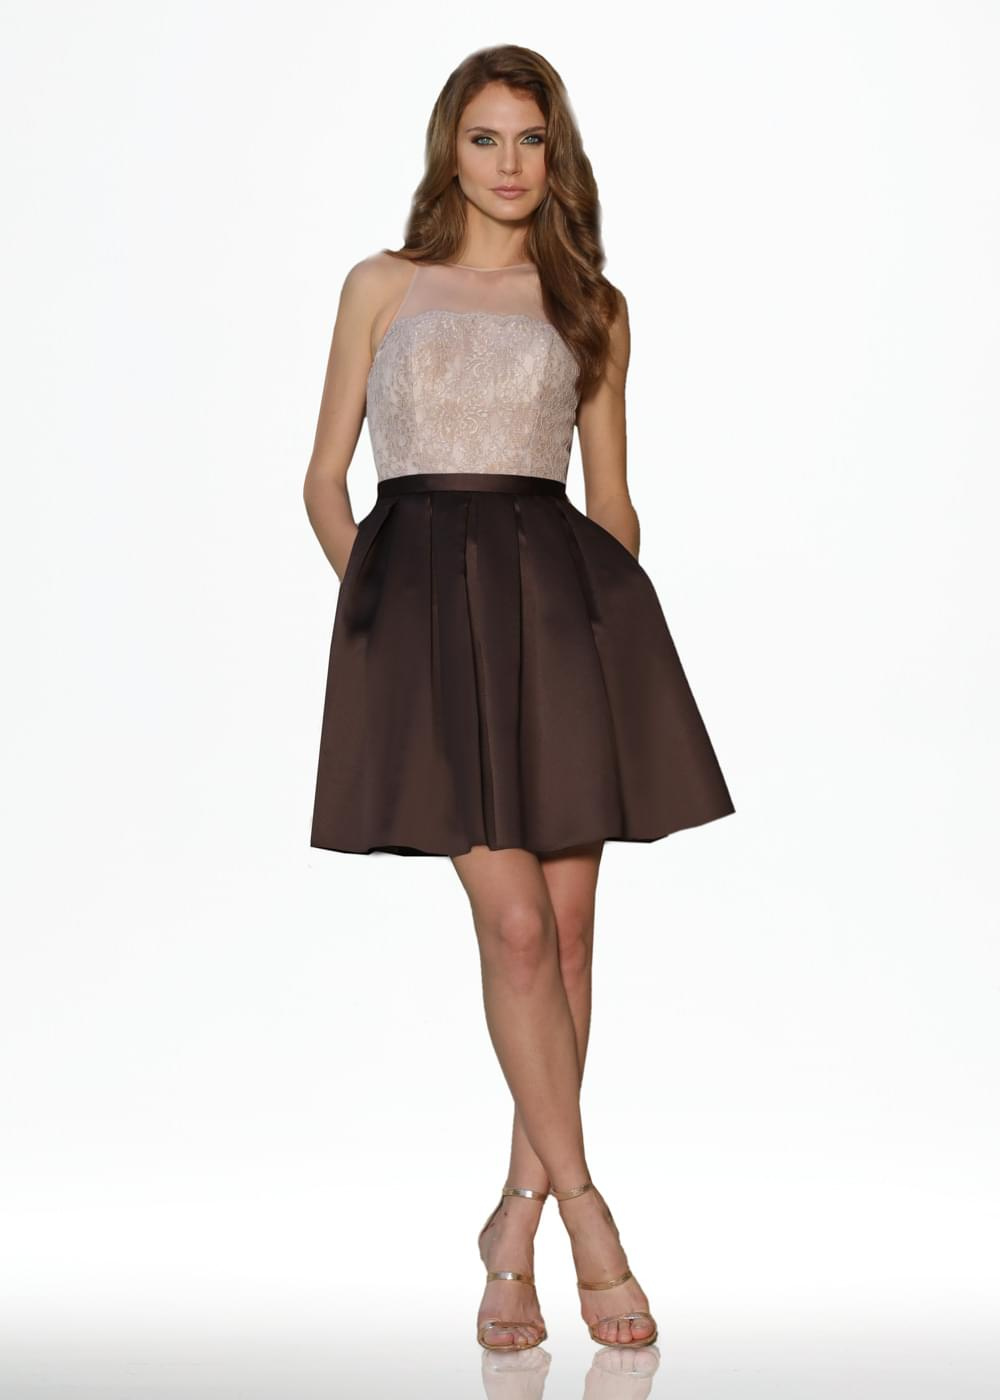 80053 Dresses with Straps By Ashdon